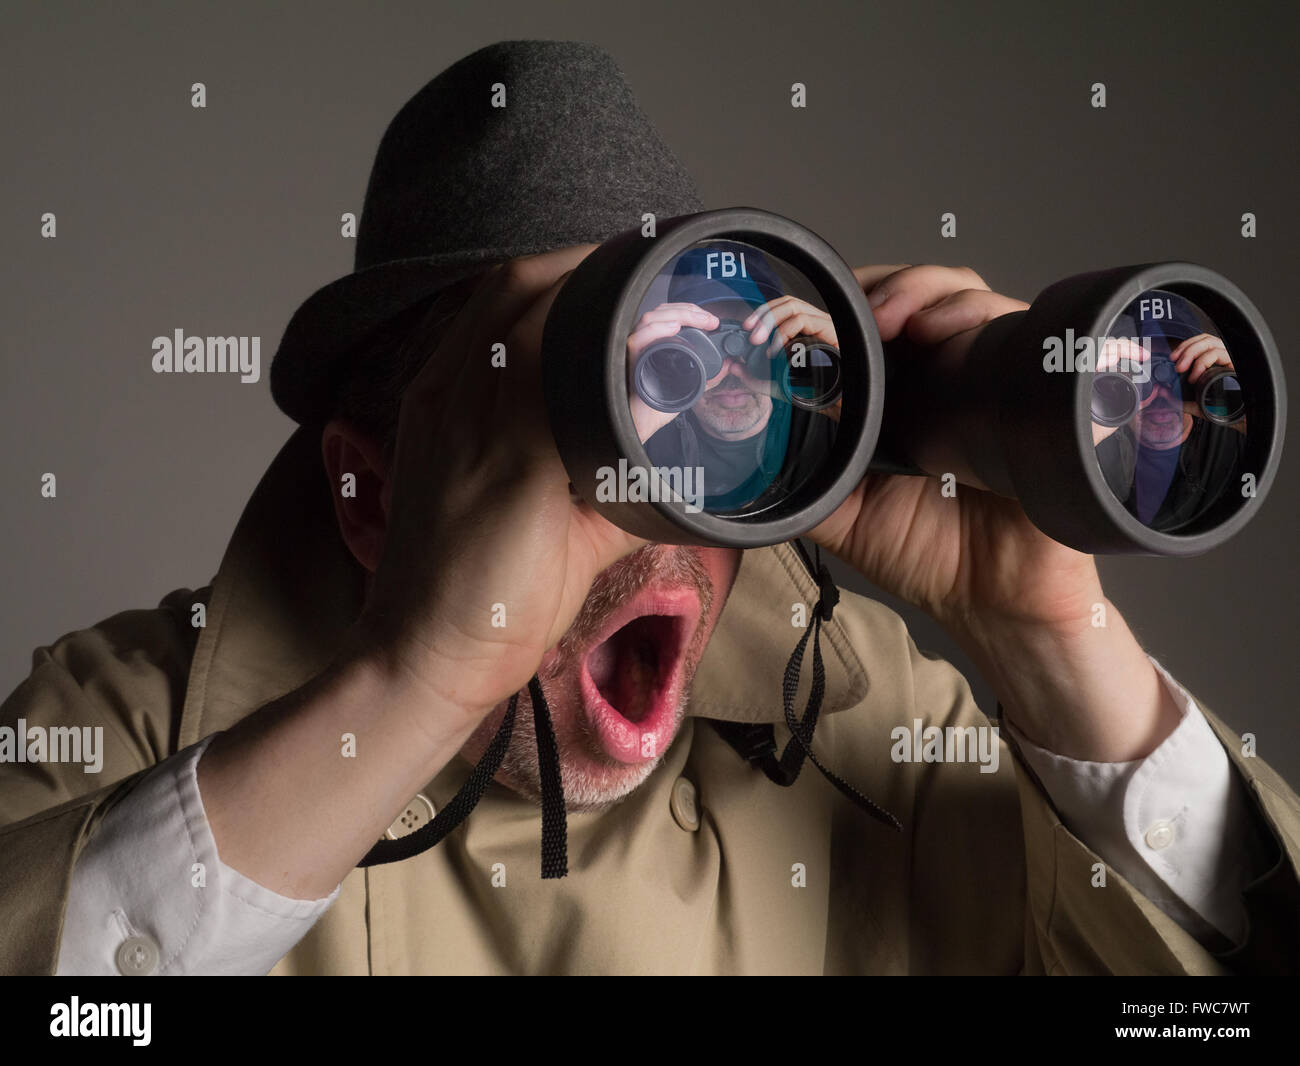 Photograph of NSA agent in trench coat and hat looking through binoculars. He is shocked to see an FBI agent watching - Stock Image